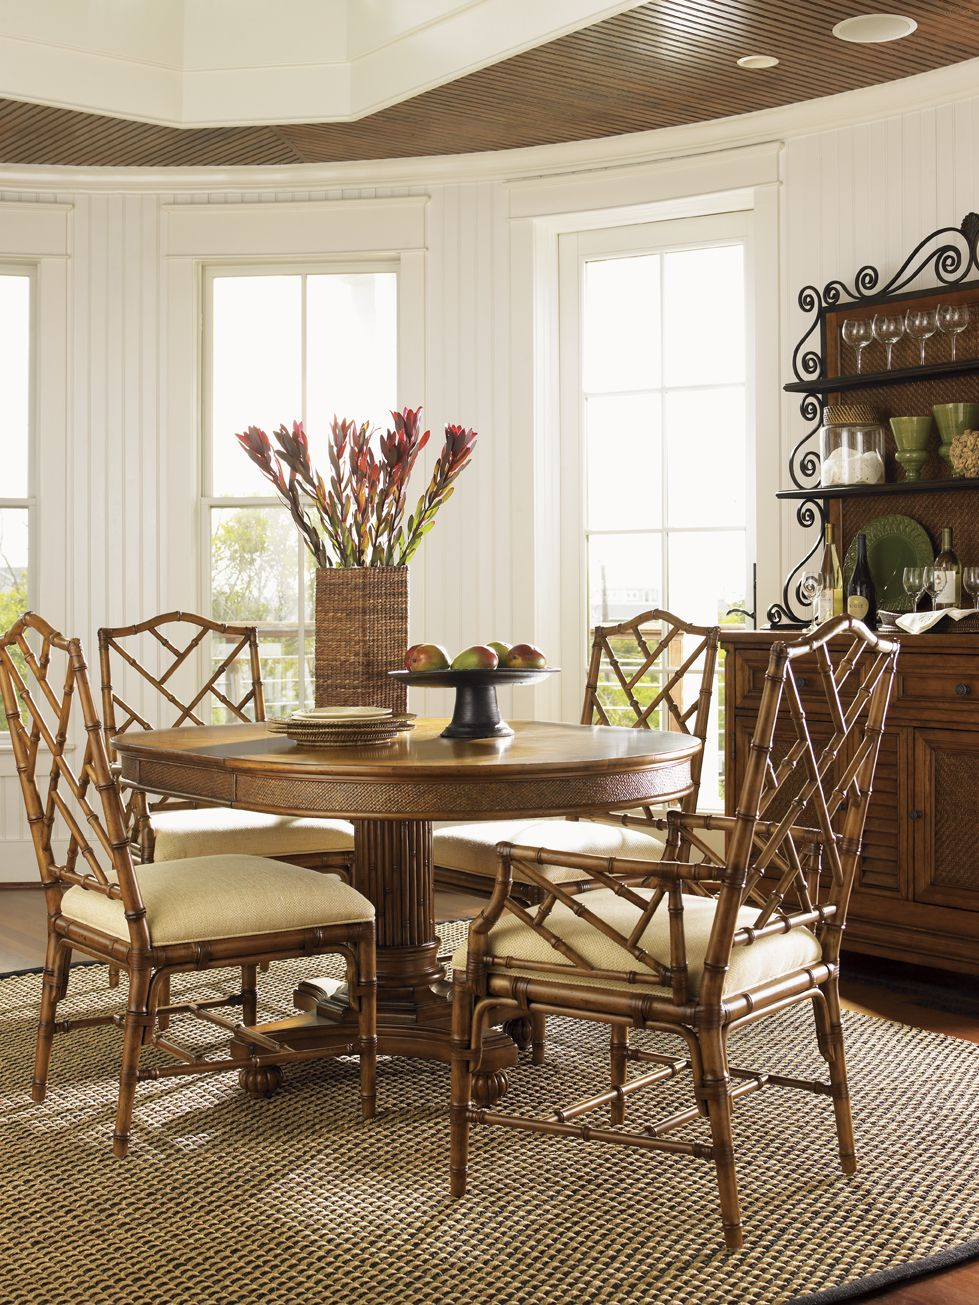 Tommy Bahama Dining Room Furniture Collection Home Islands And Tommy Bahama On Pinterest